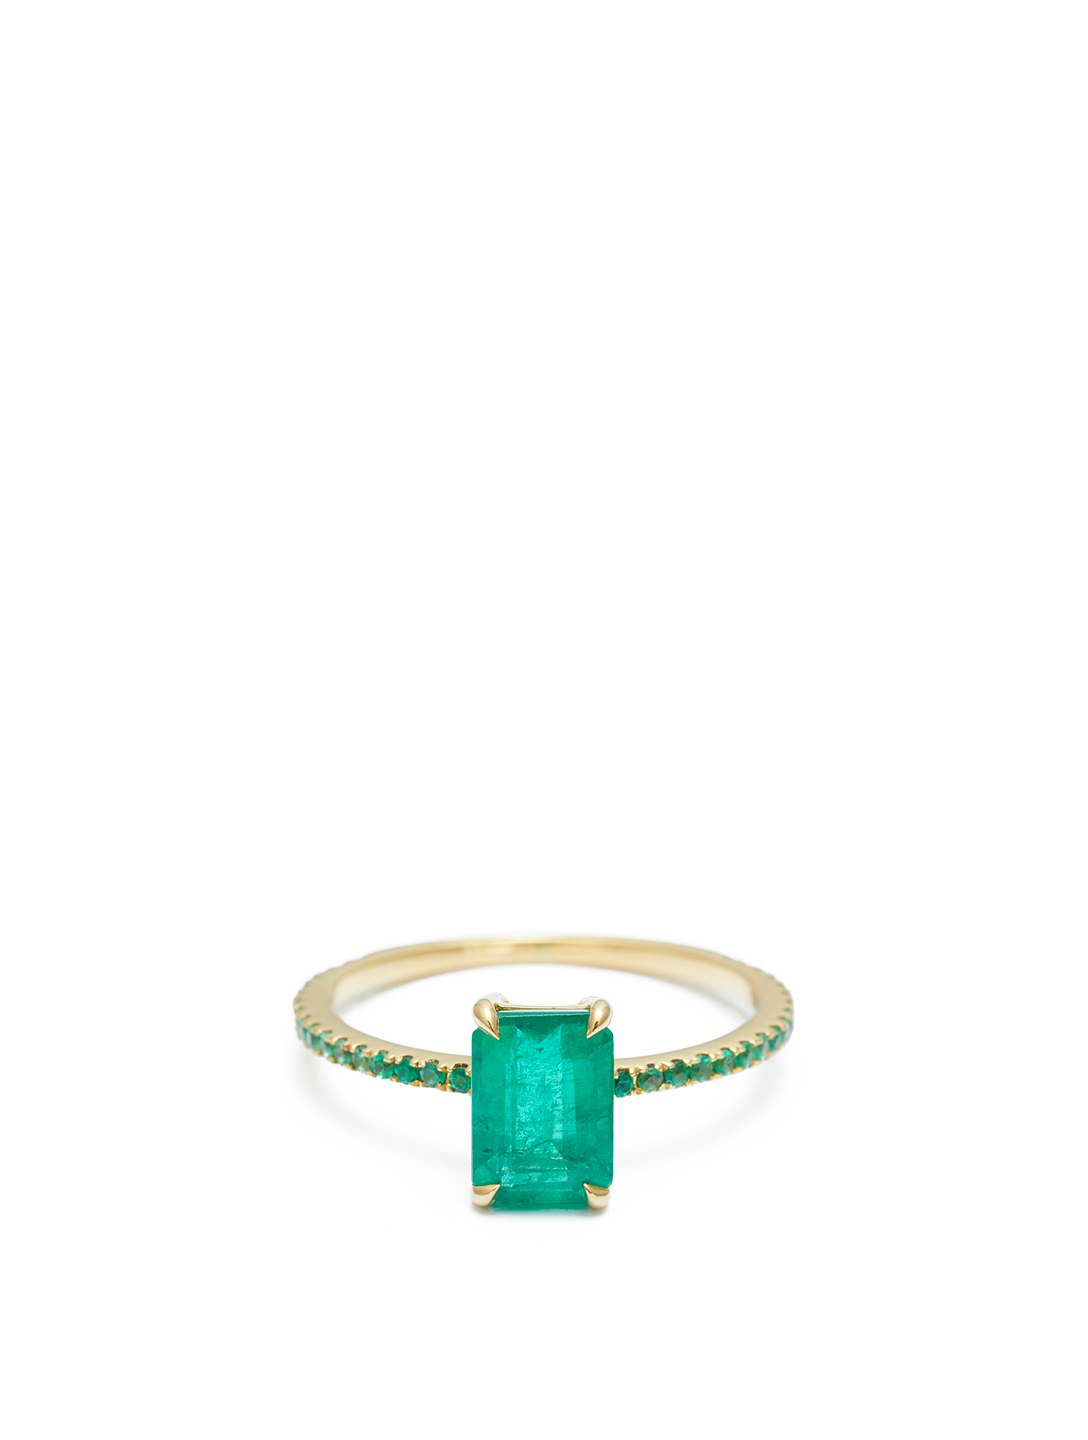 YI COLLECTION 18K Gold Emerald Spring Ring Women's Metallic